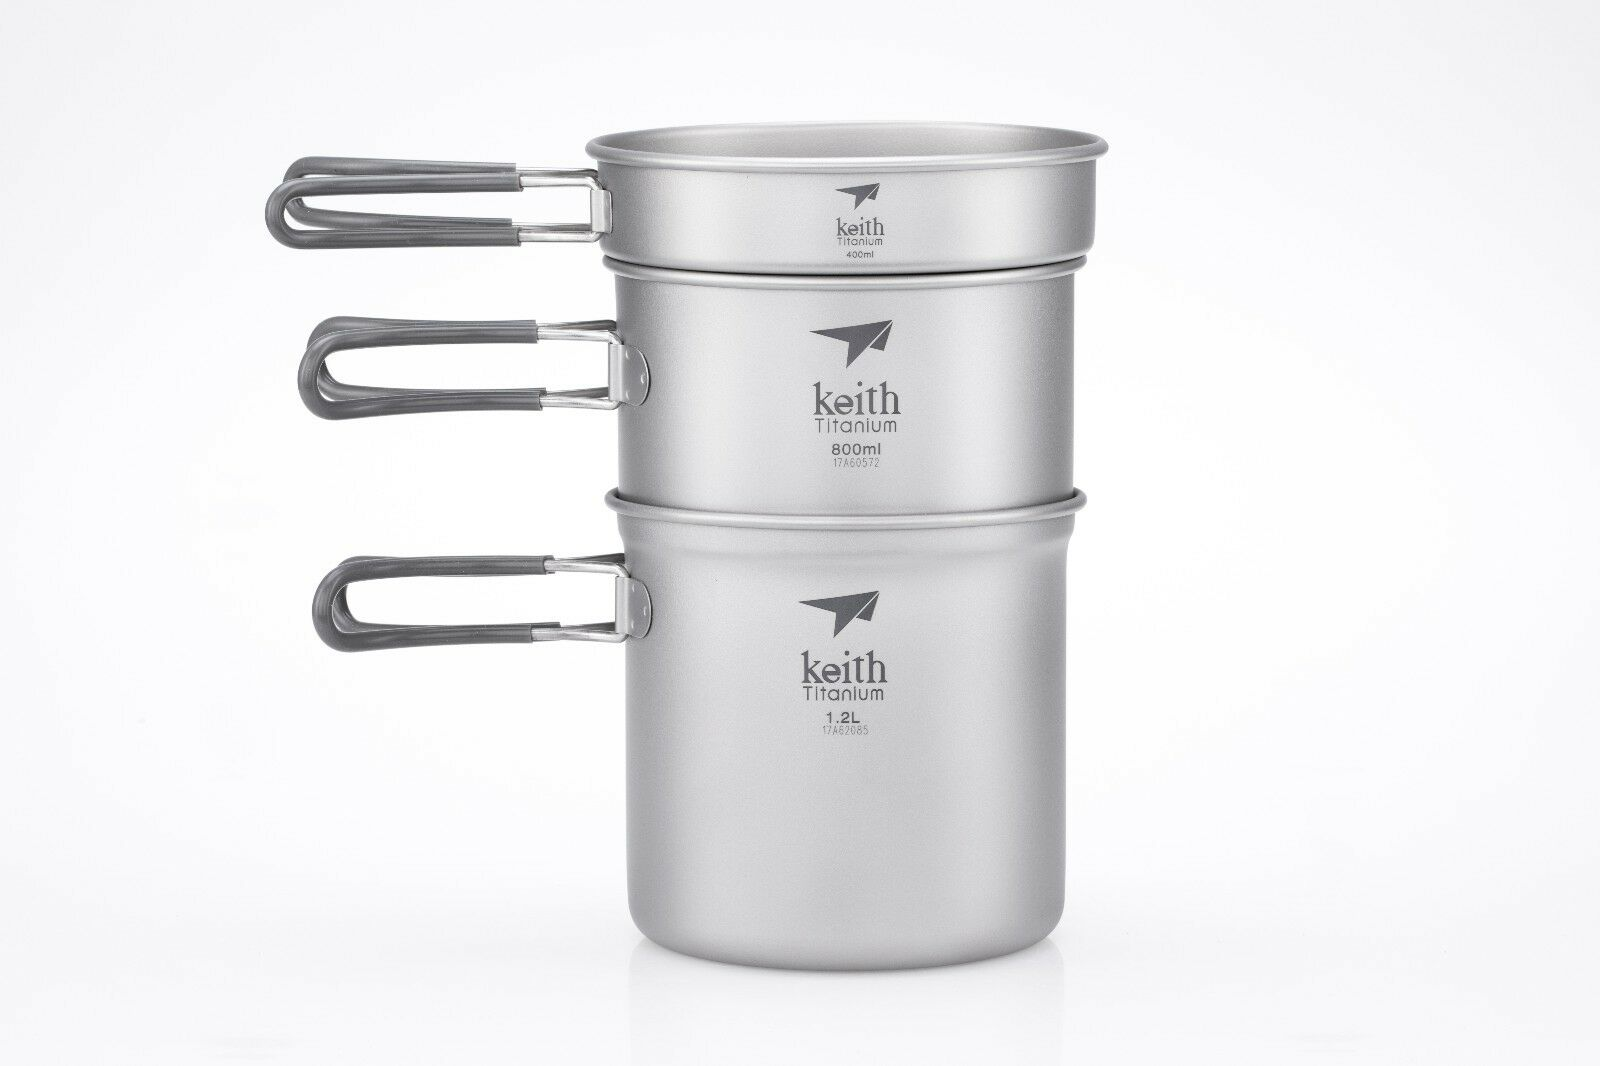 Keith Ti6014 3-Piece Pot and Pan Cook Set - Time 2.4 L (Limited Time - Promotion Price) 2a9011